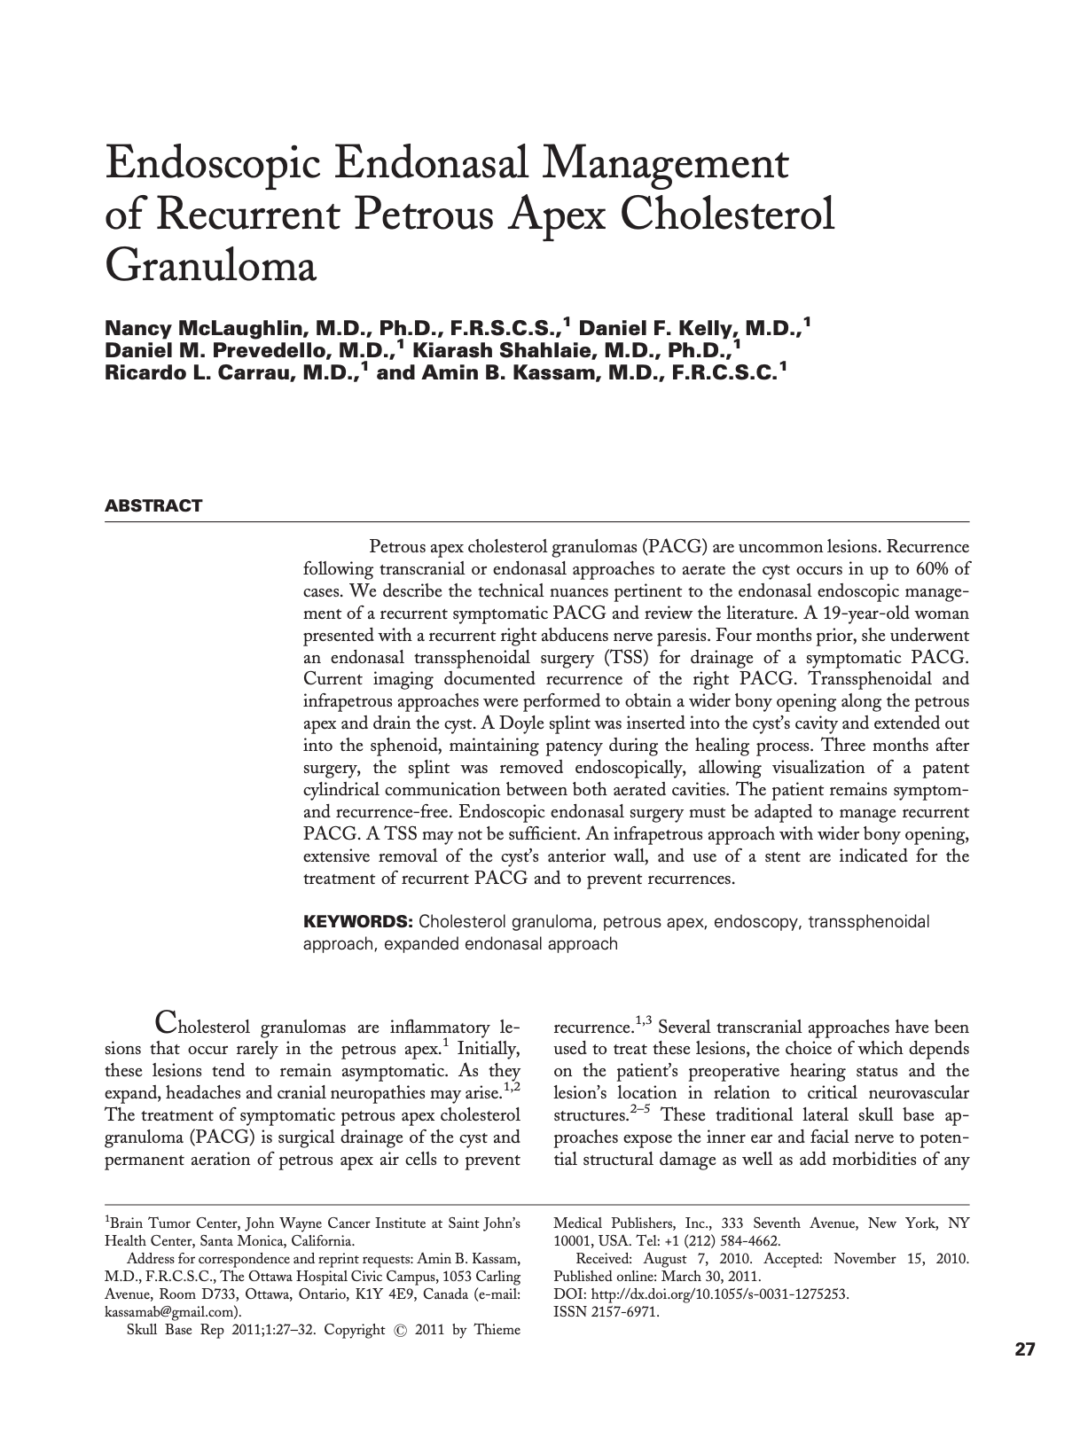 Endoscopic Endonasal Management of Recurrent Petrous Apex Cholesterol Granuloma